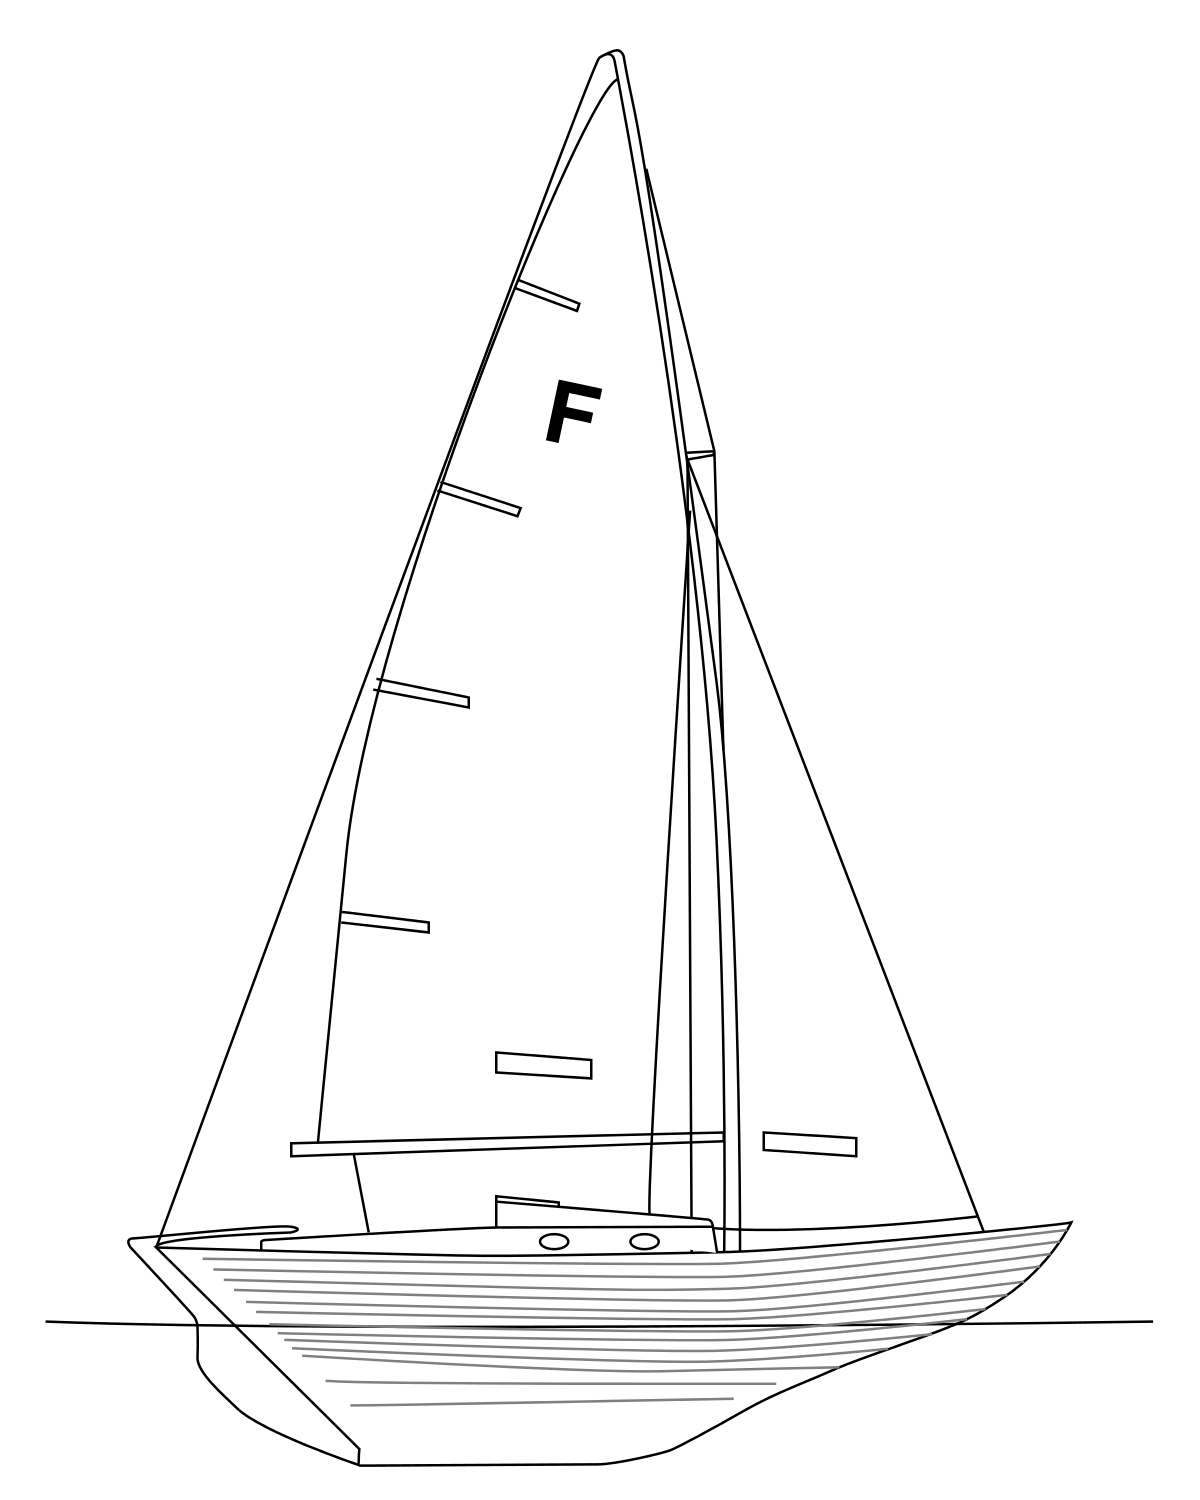 Drawing sailboats. Nordic folkboat wikipedia